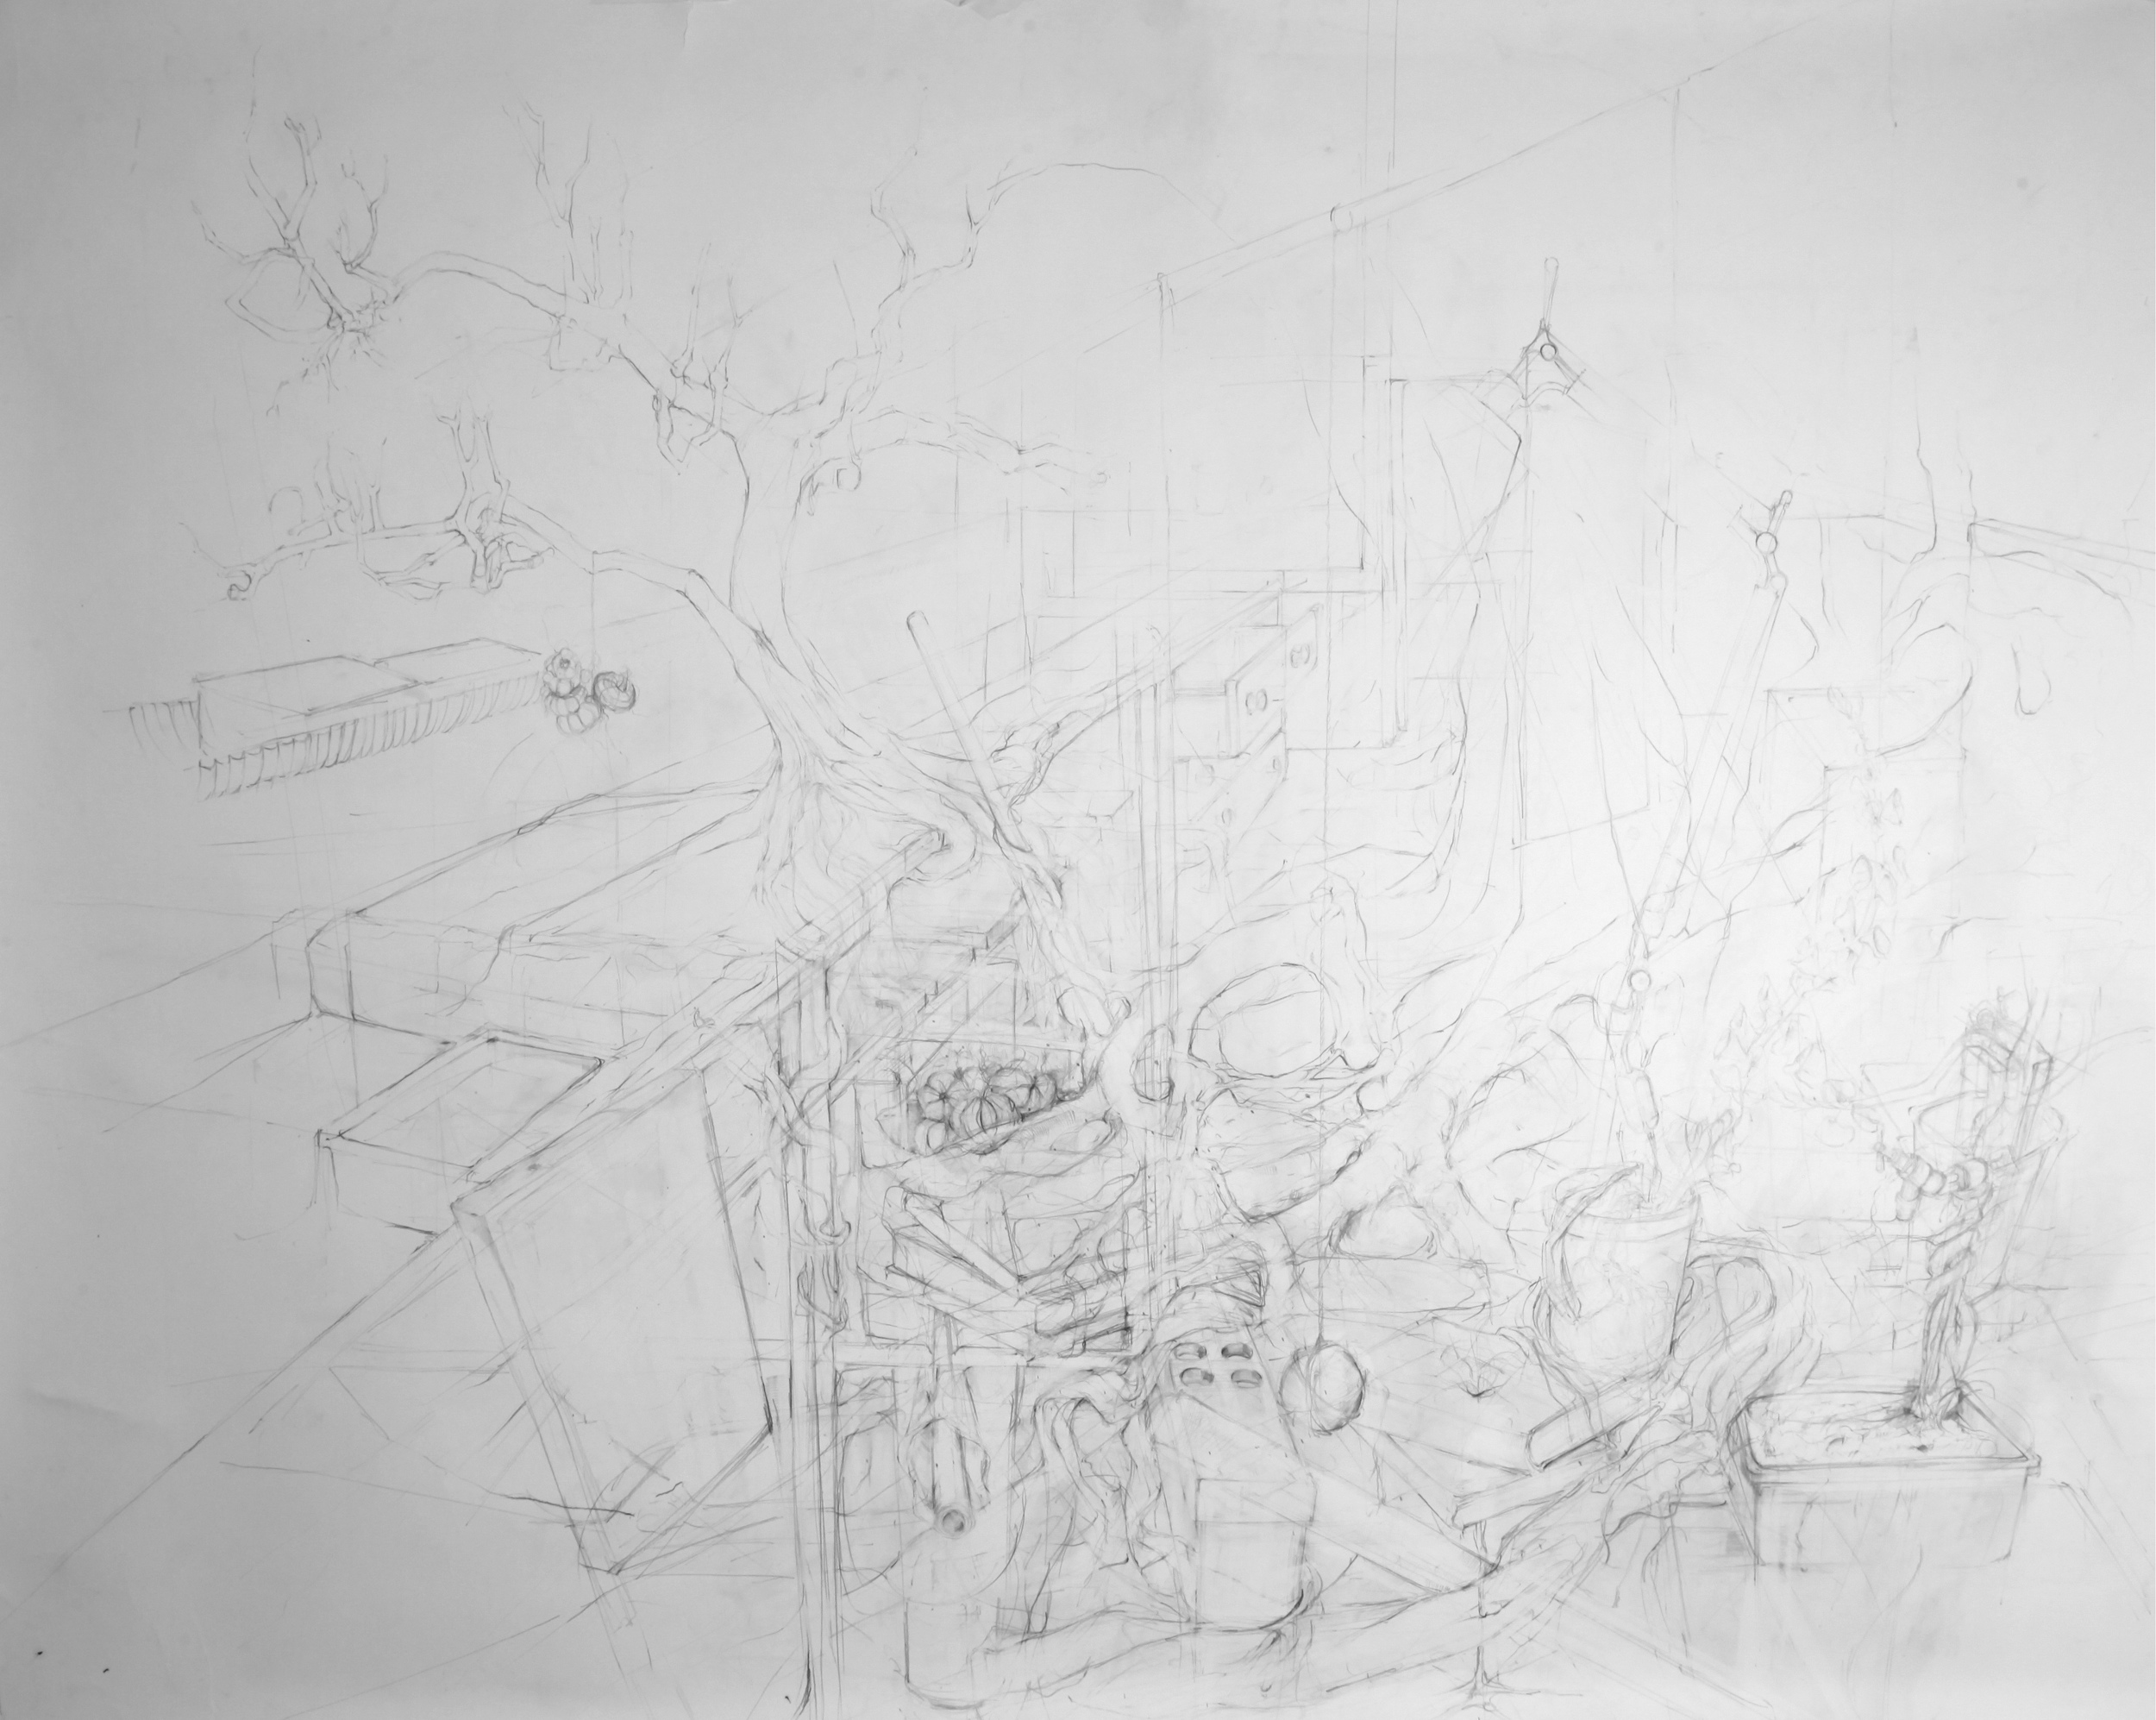 'A Cluttered Mind'   pencil on paper, 220 x 150 cm